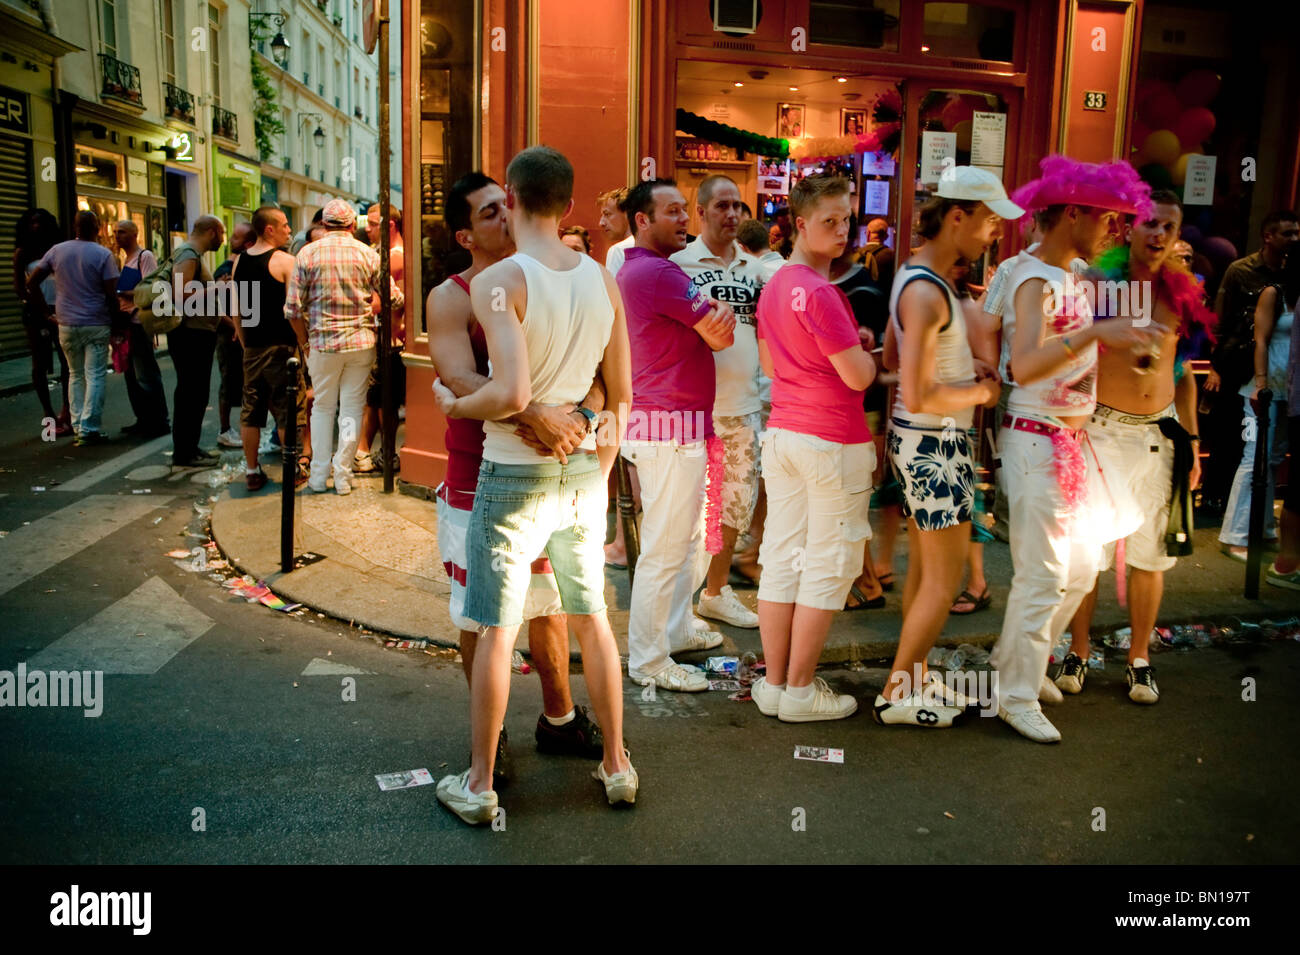 Gay district in paris